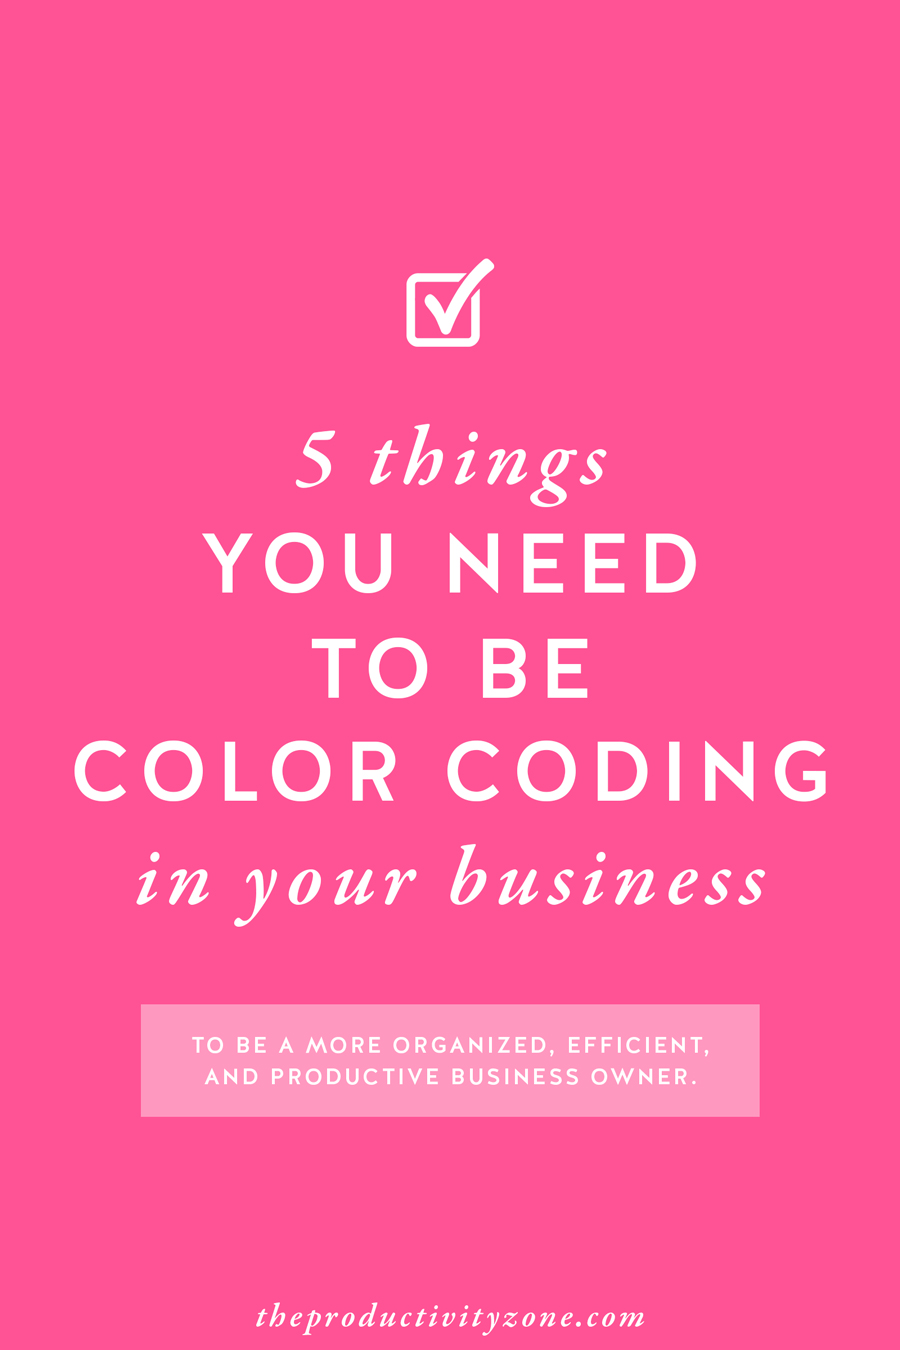 Color coding will help you be a more organized, efficient, and productive business owner. Over on The Productivity Zone, I'm sharing what 5 things you need to be color coding in your business to make your life EASIER!!